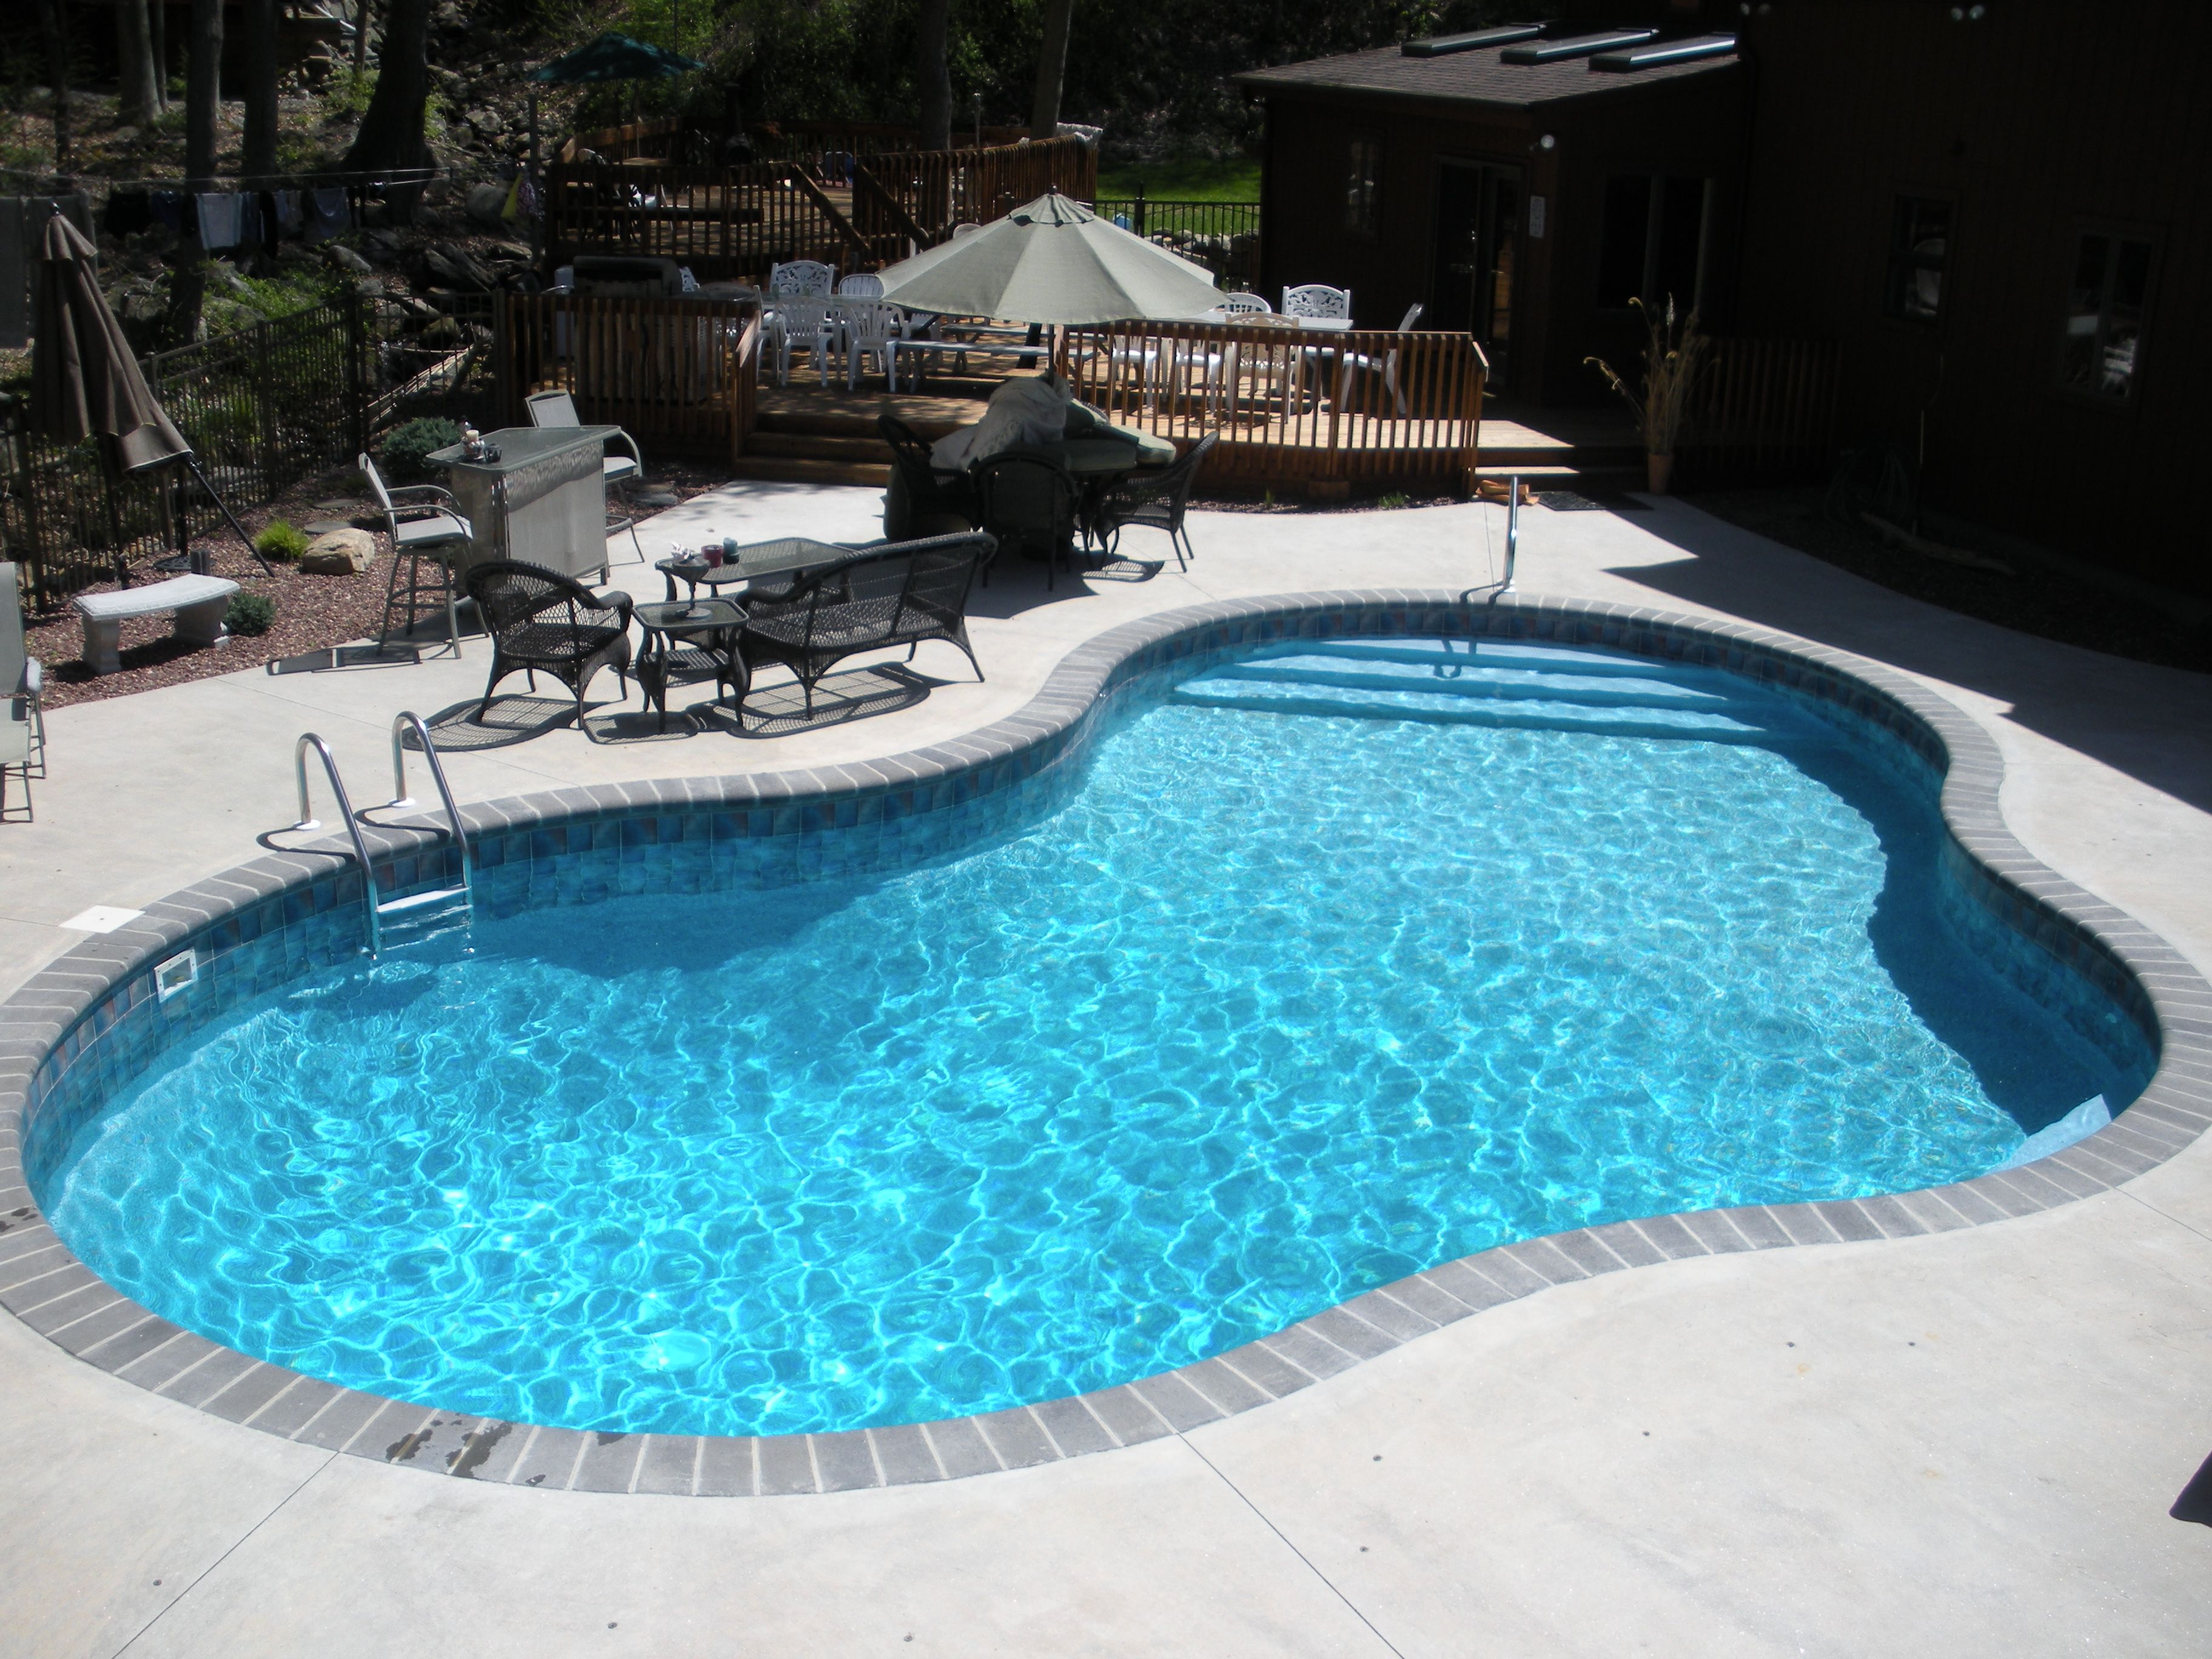 Vinyl Lined in-ground pool, w/custom steel stairs and bench - Mountain